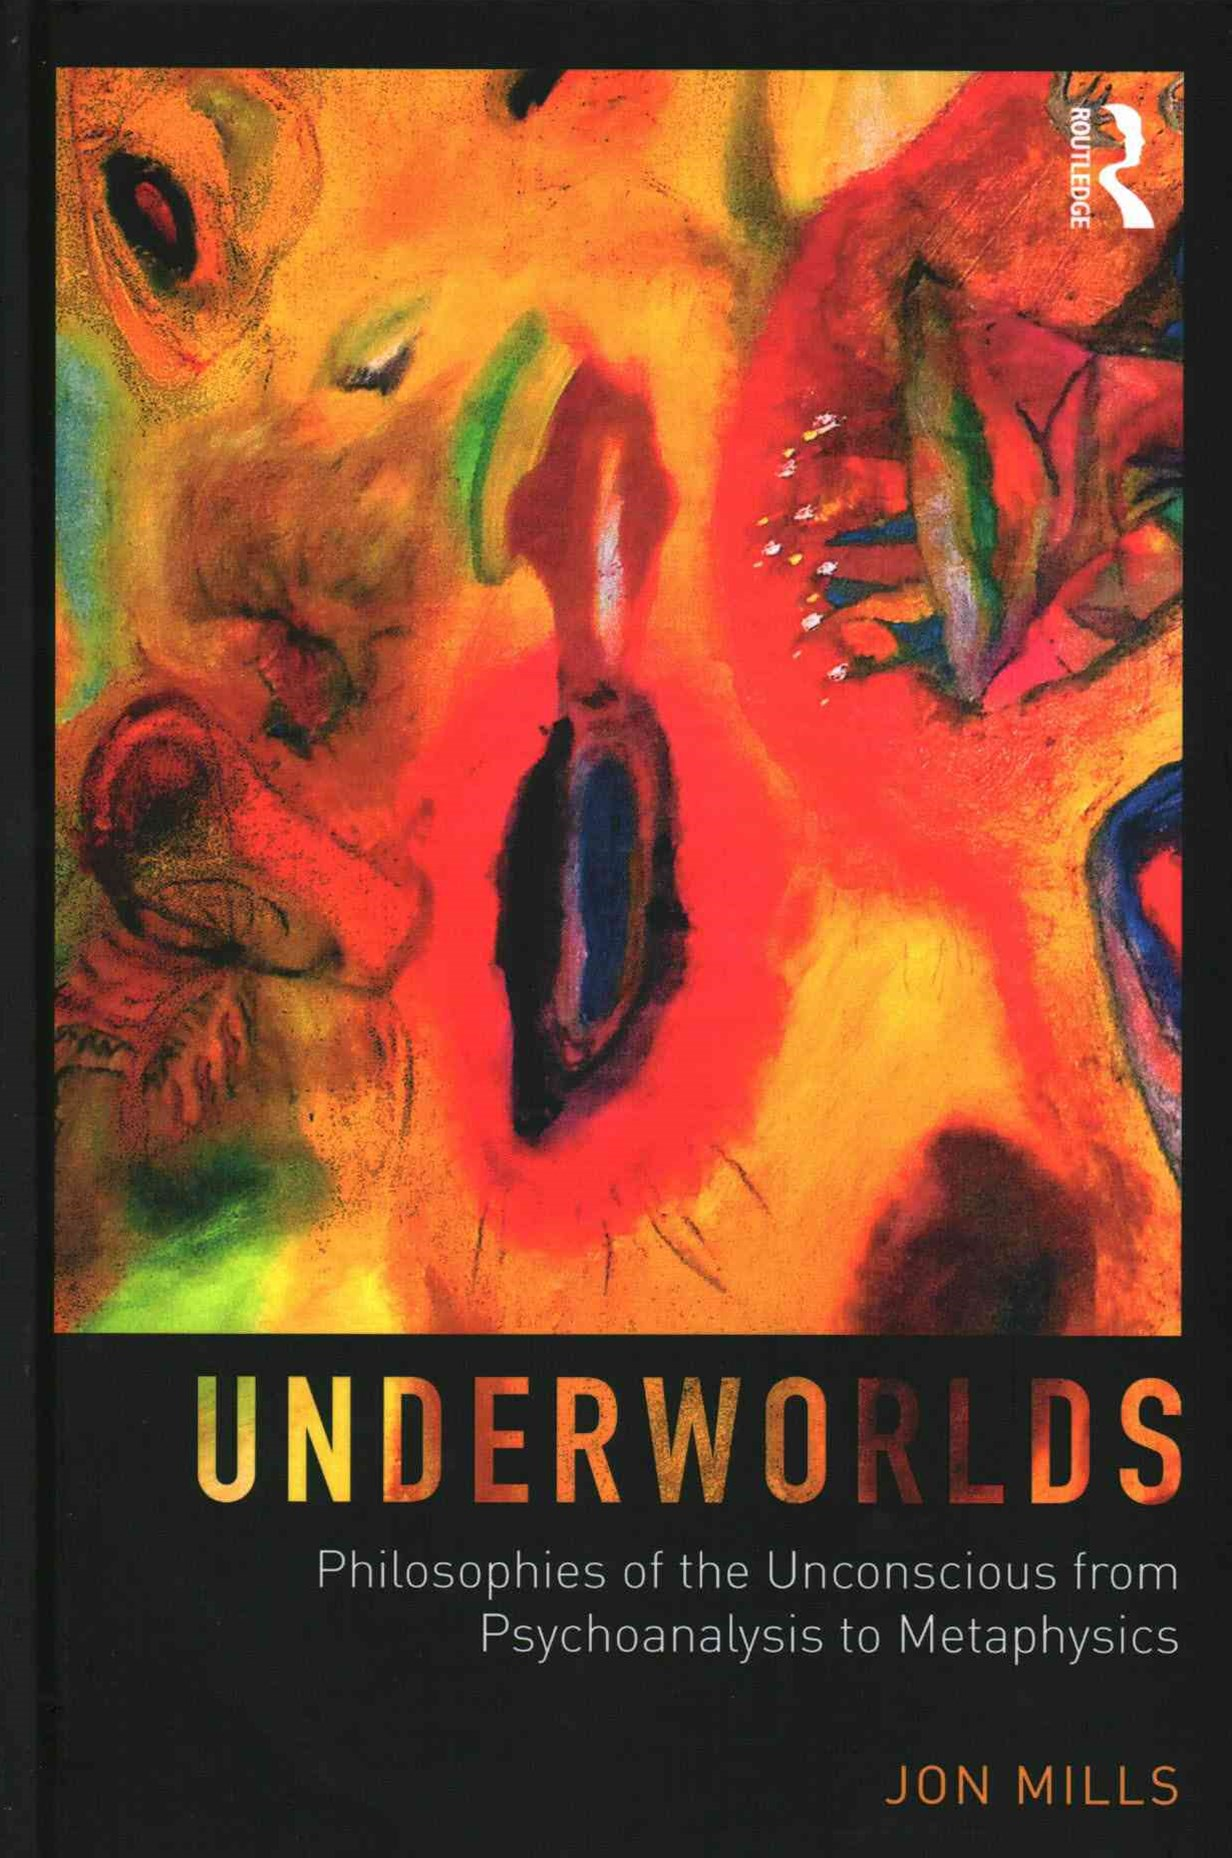 Underworlds: Philosophies of the Unconscious from Psychoanalysis to Metaphysics